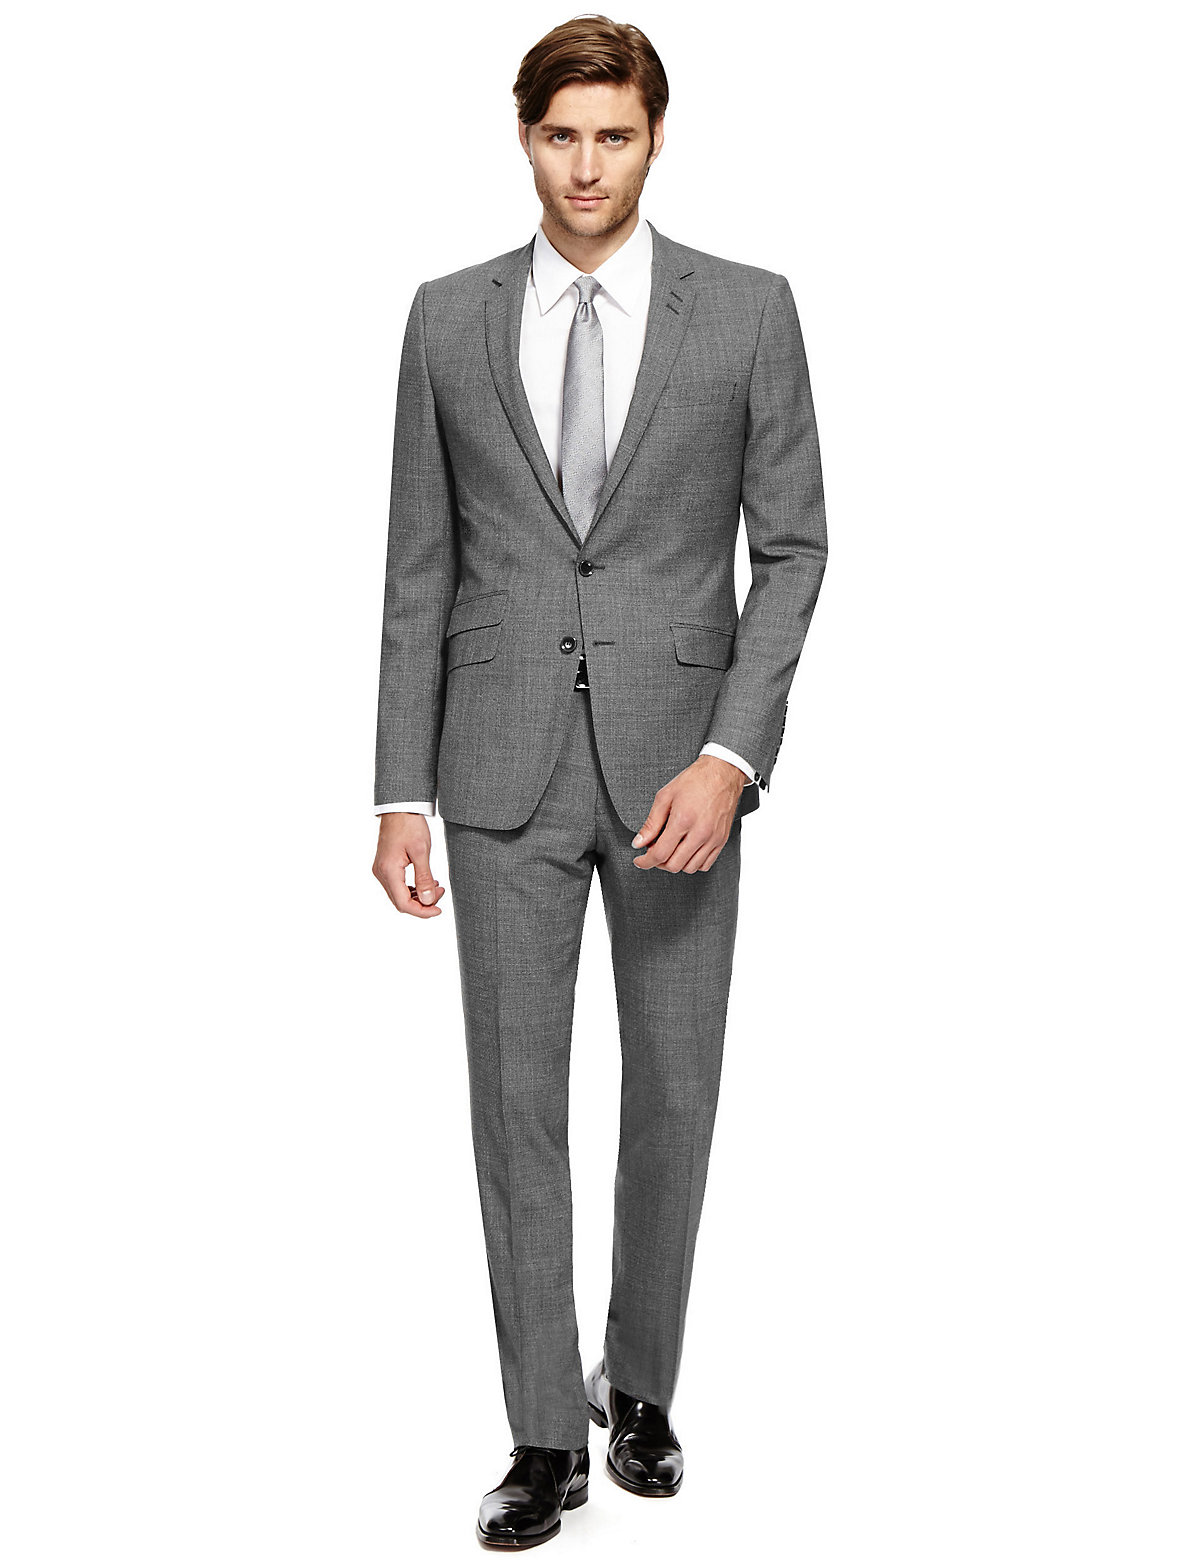 buyitflauntitthrowit: SUITS THAT DONT MAKE YOU LOOK LIKE A ...